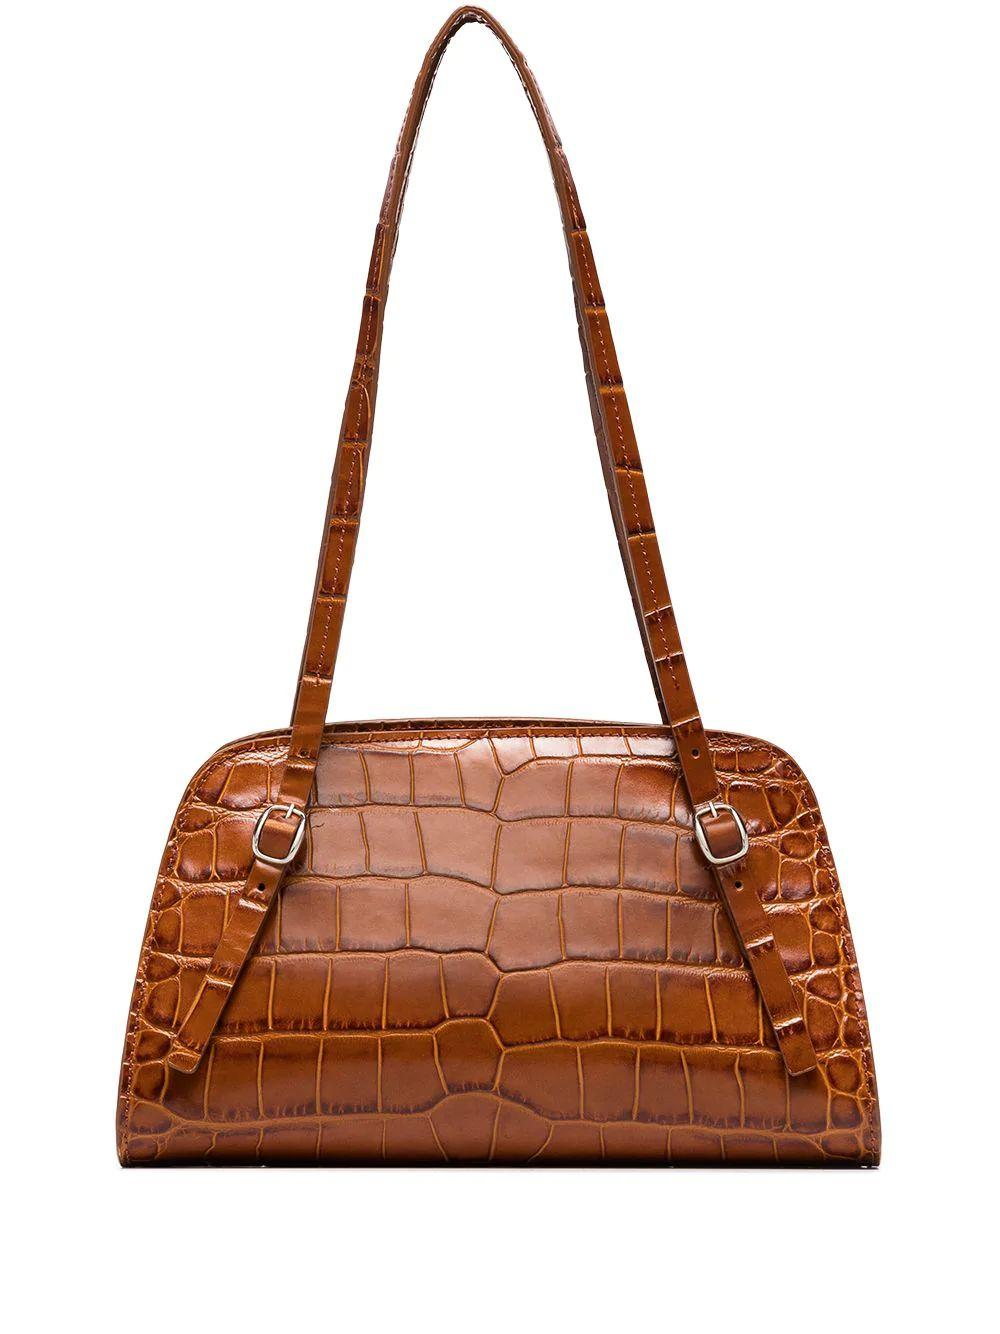 Lora Embossed Crocodile Bag Item # 20FWLRSTNDMED